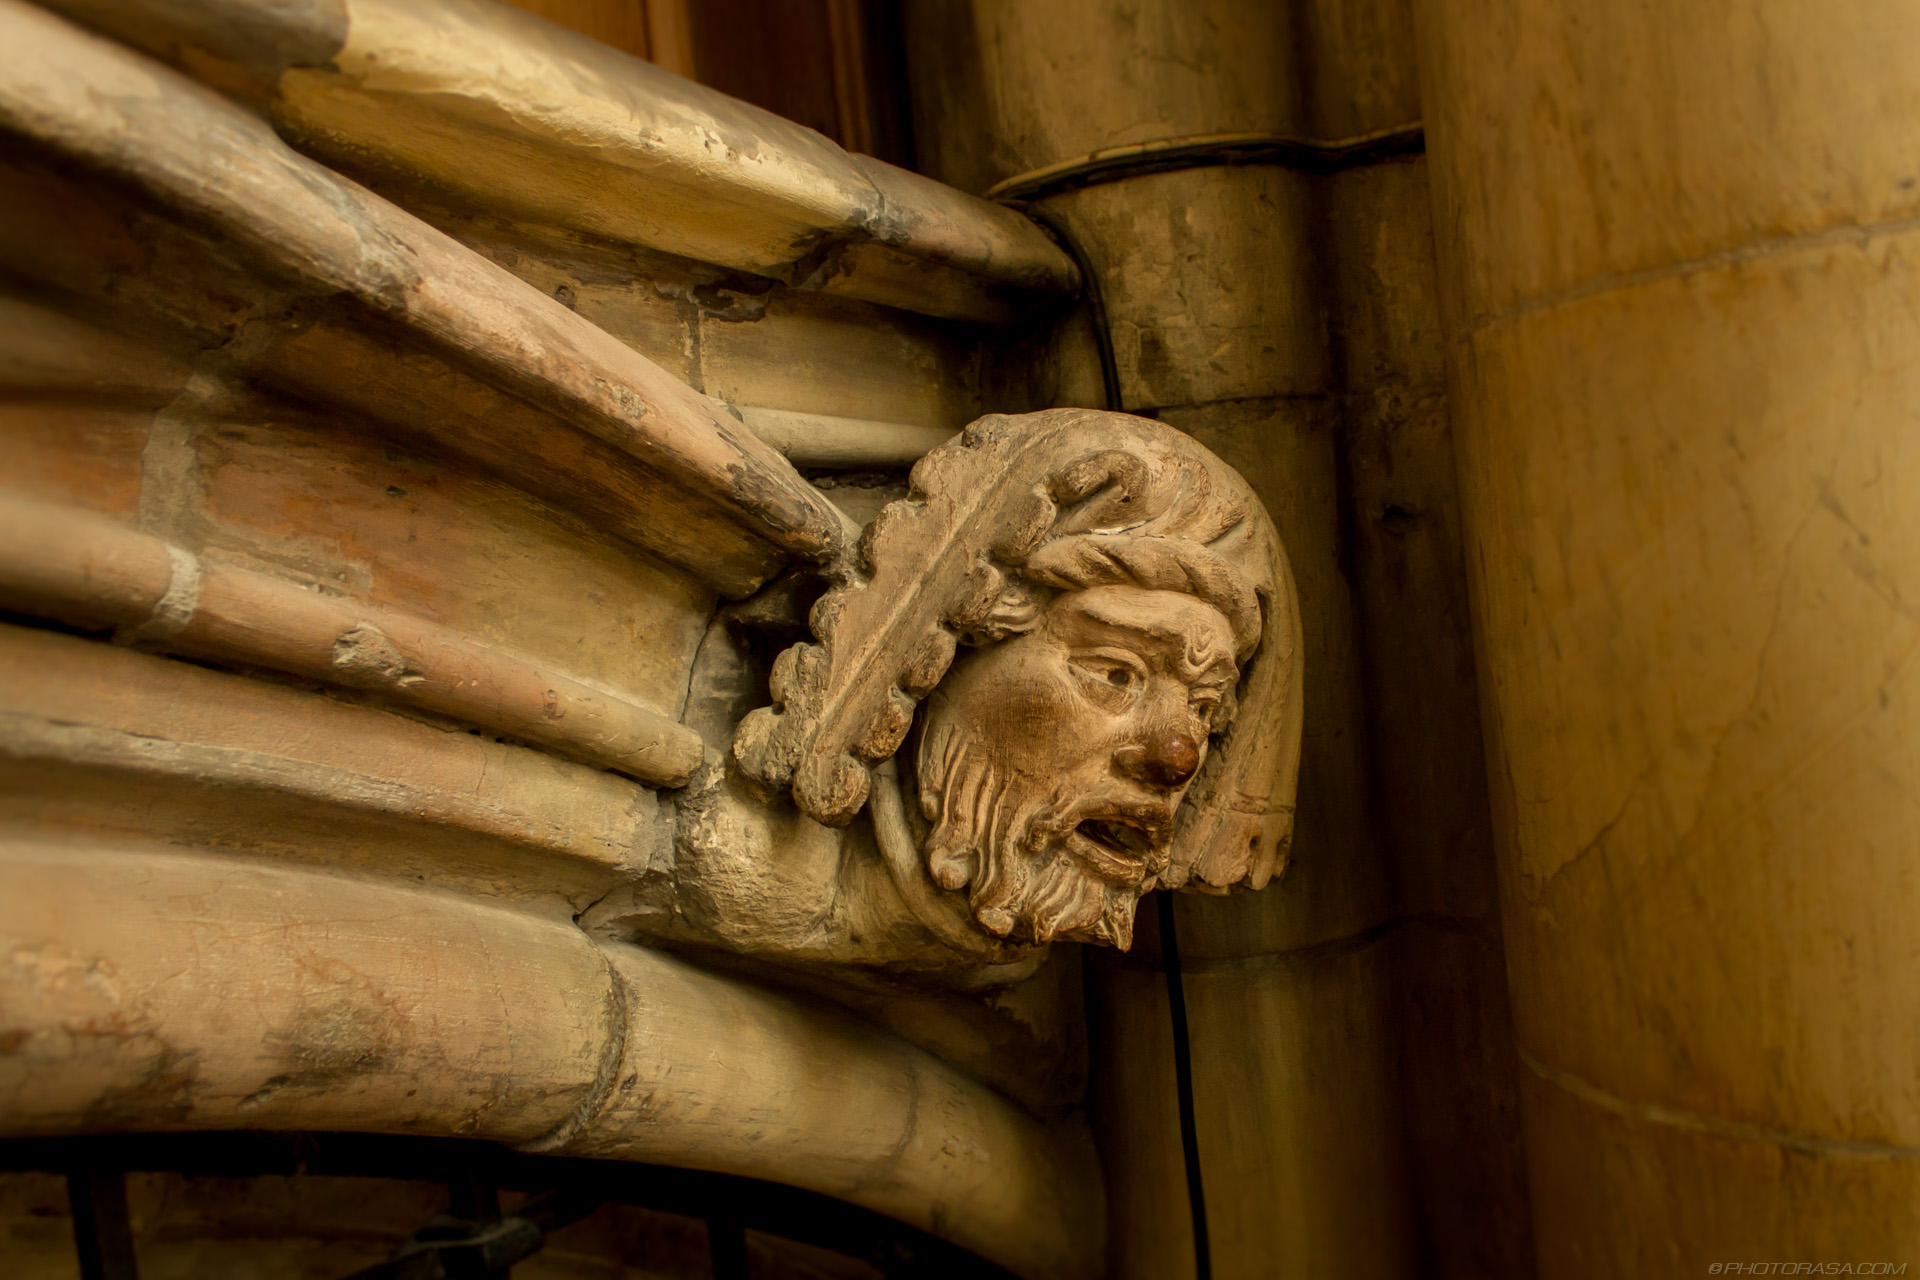 https://photorasa.com/yorkminster-cathedral/gargoyle-man/